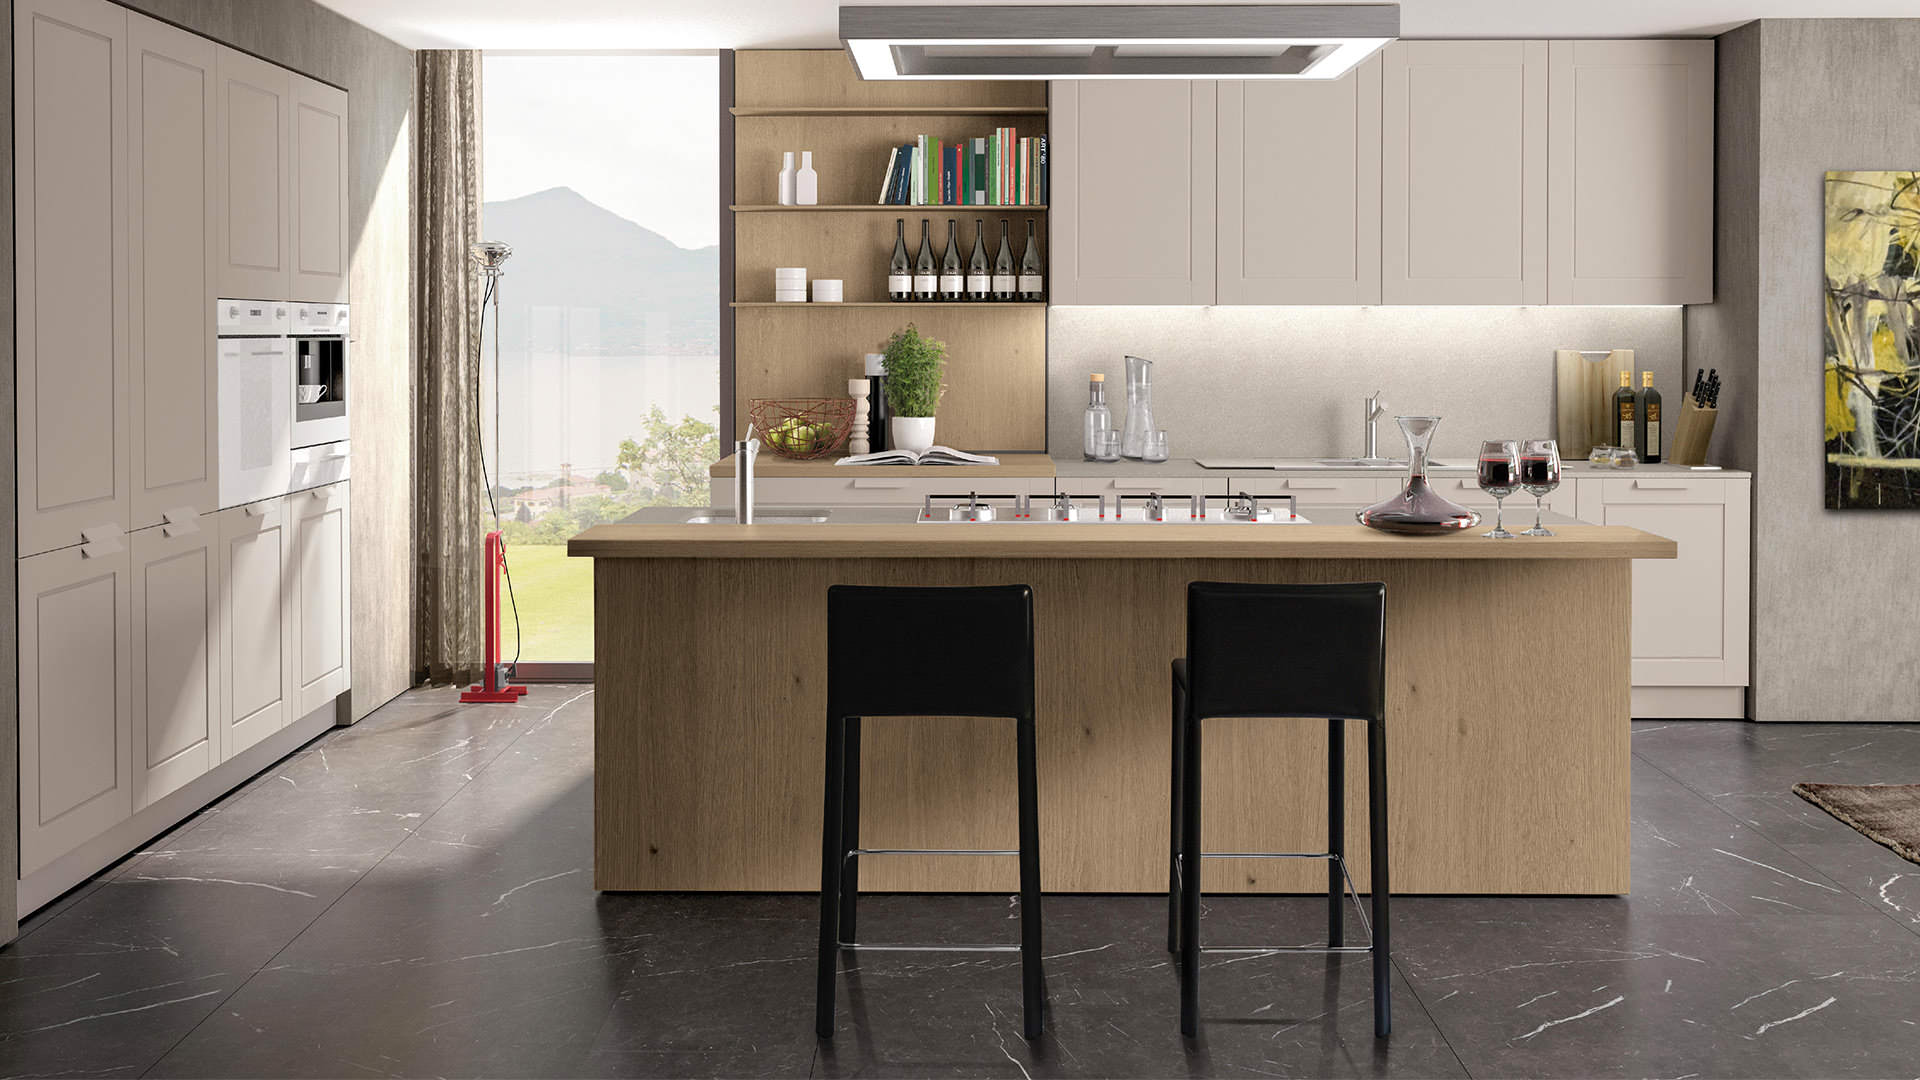 euromobil quadrica kitchen studio living & more total home solutions kitchen renovation cyprus larnaca nicosia